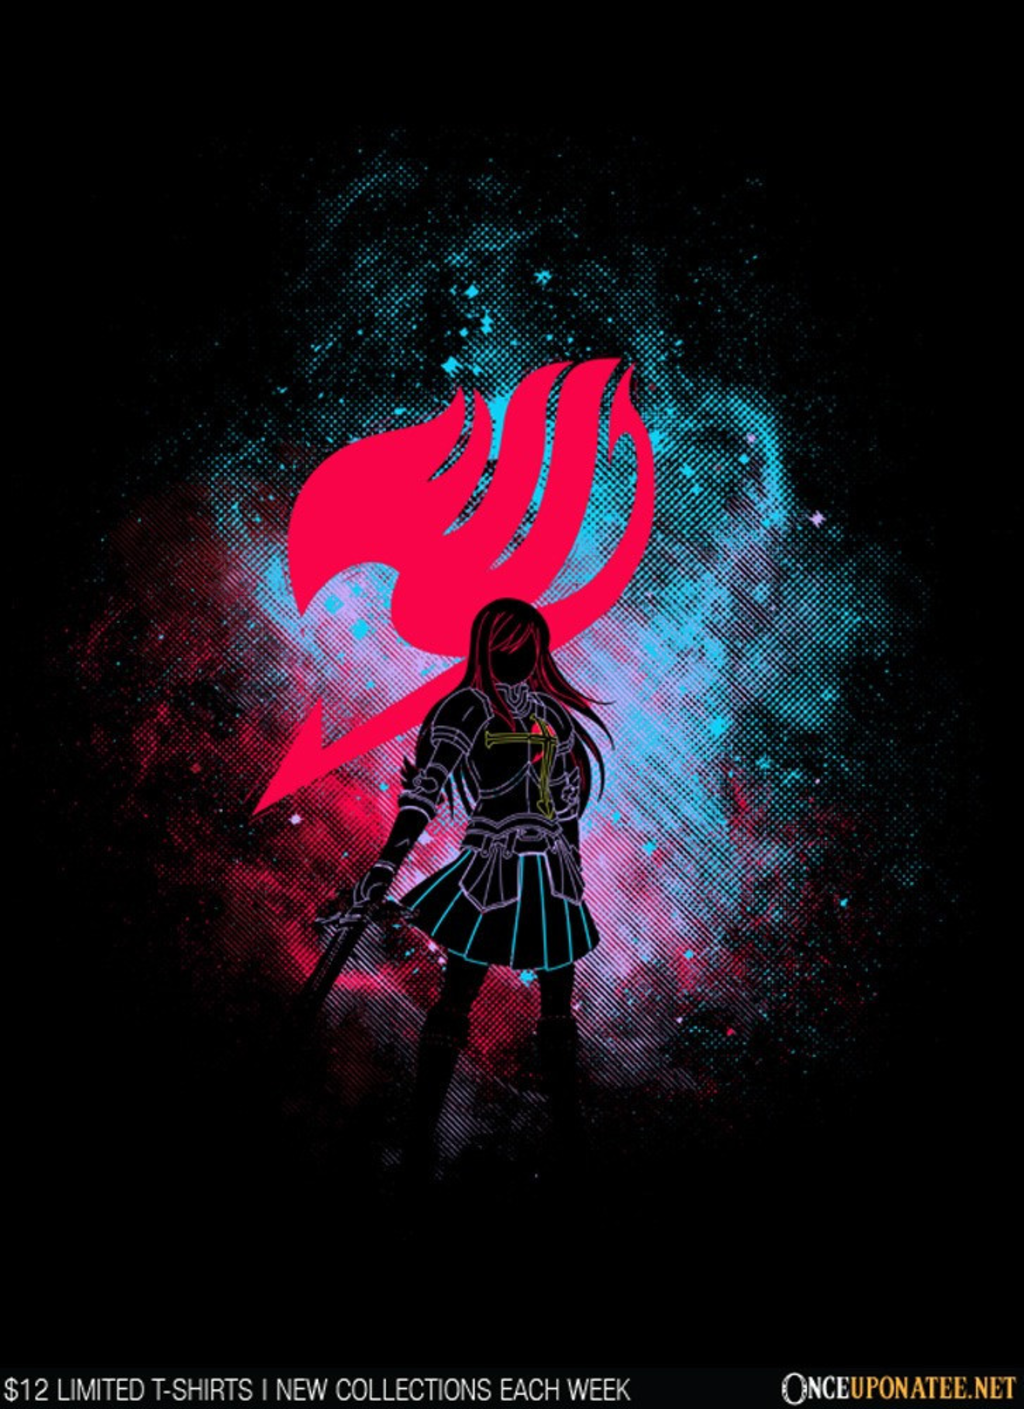 Once Upon a Tee: Erza Art